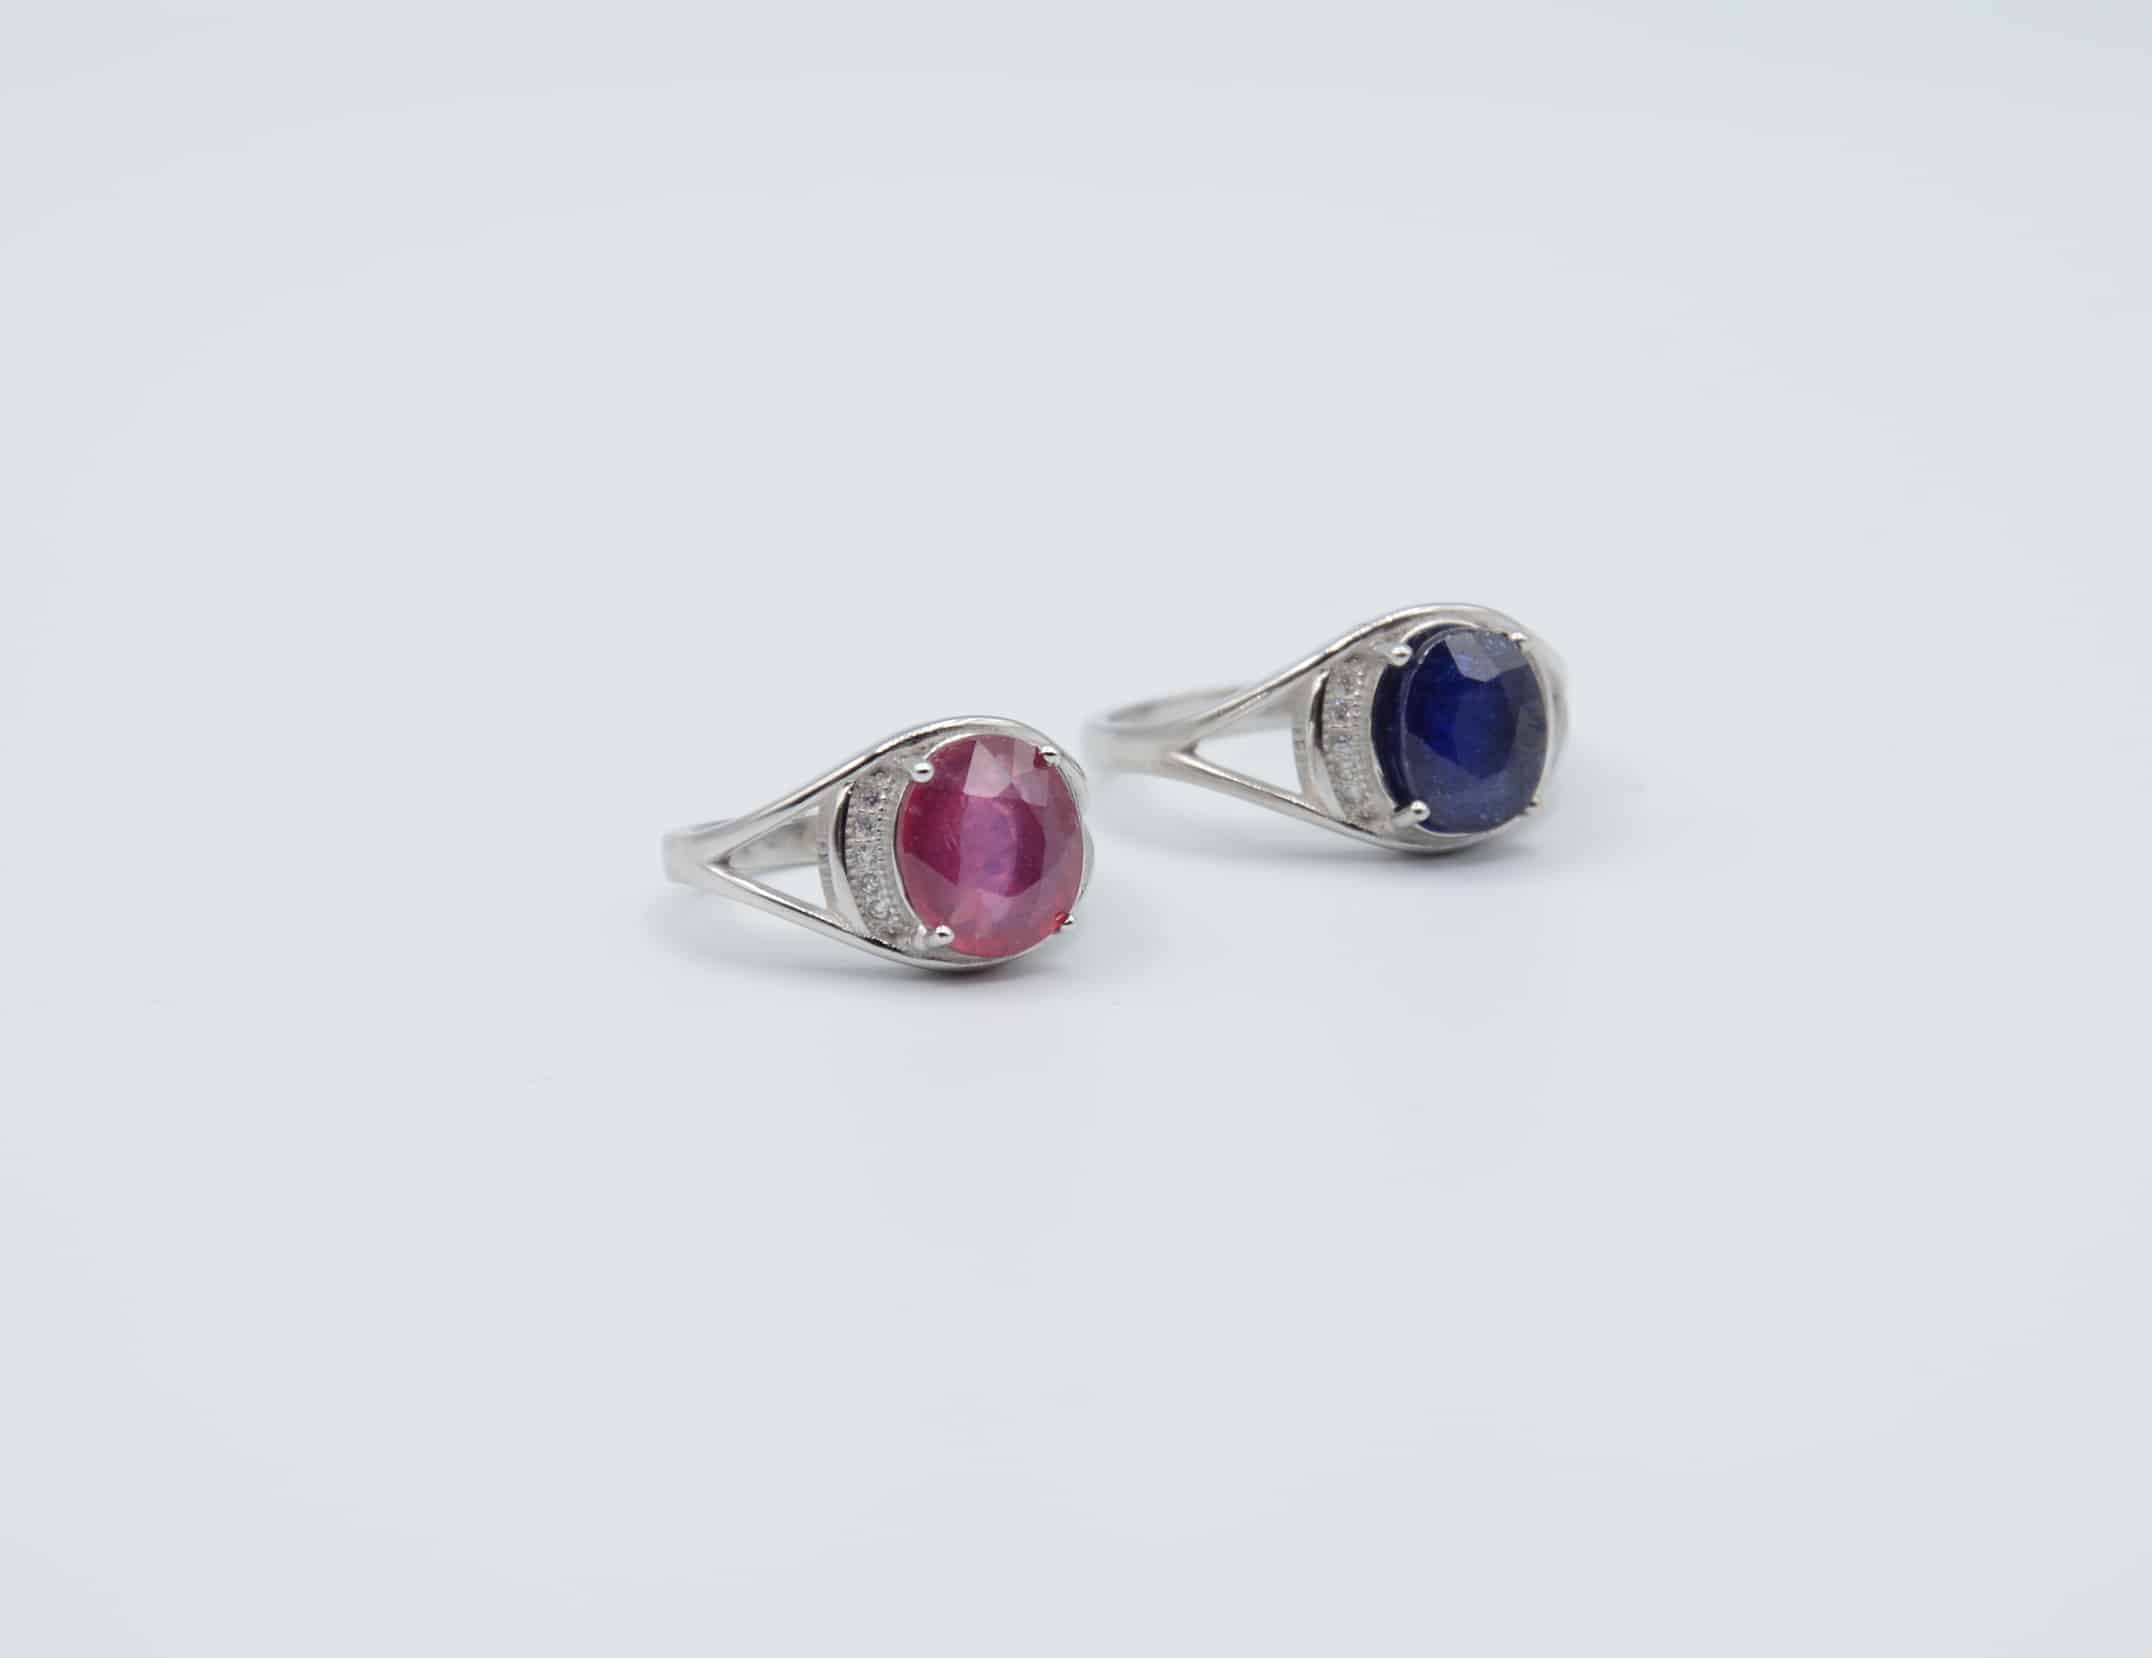 stud wg cut faceted pc petra collections class szor products earrings palladium lilac multisapphire and sapphire copy studs rose